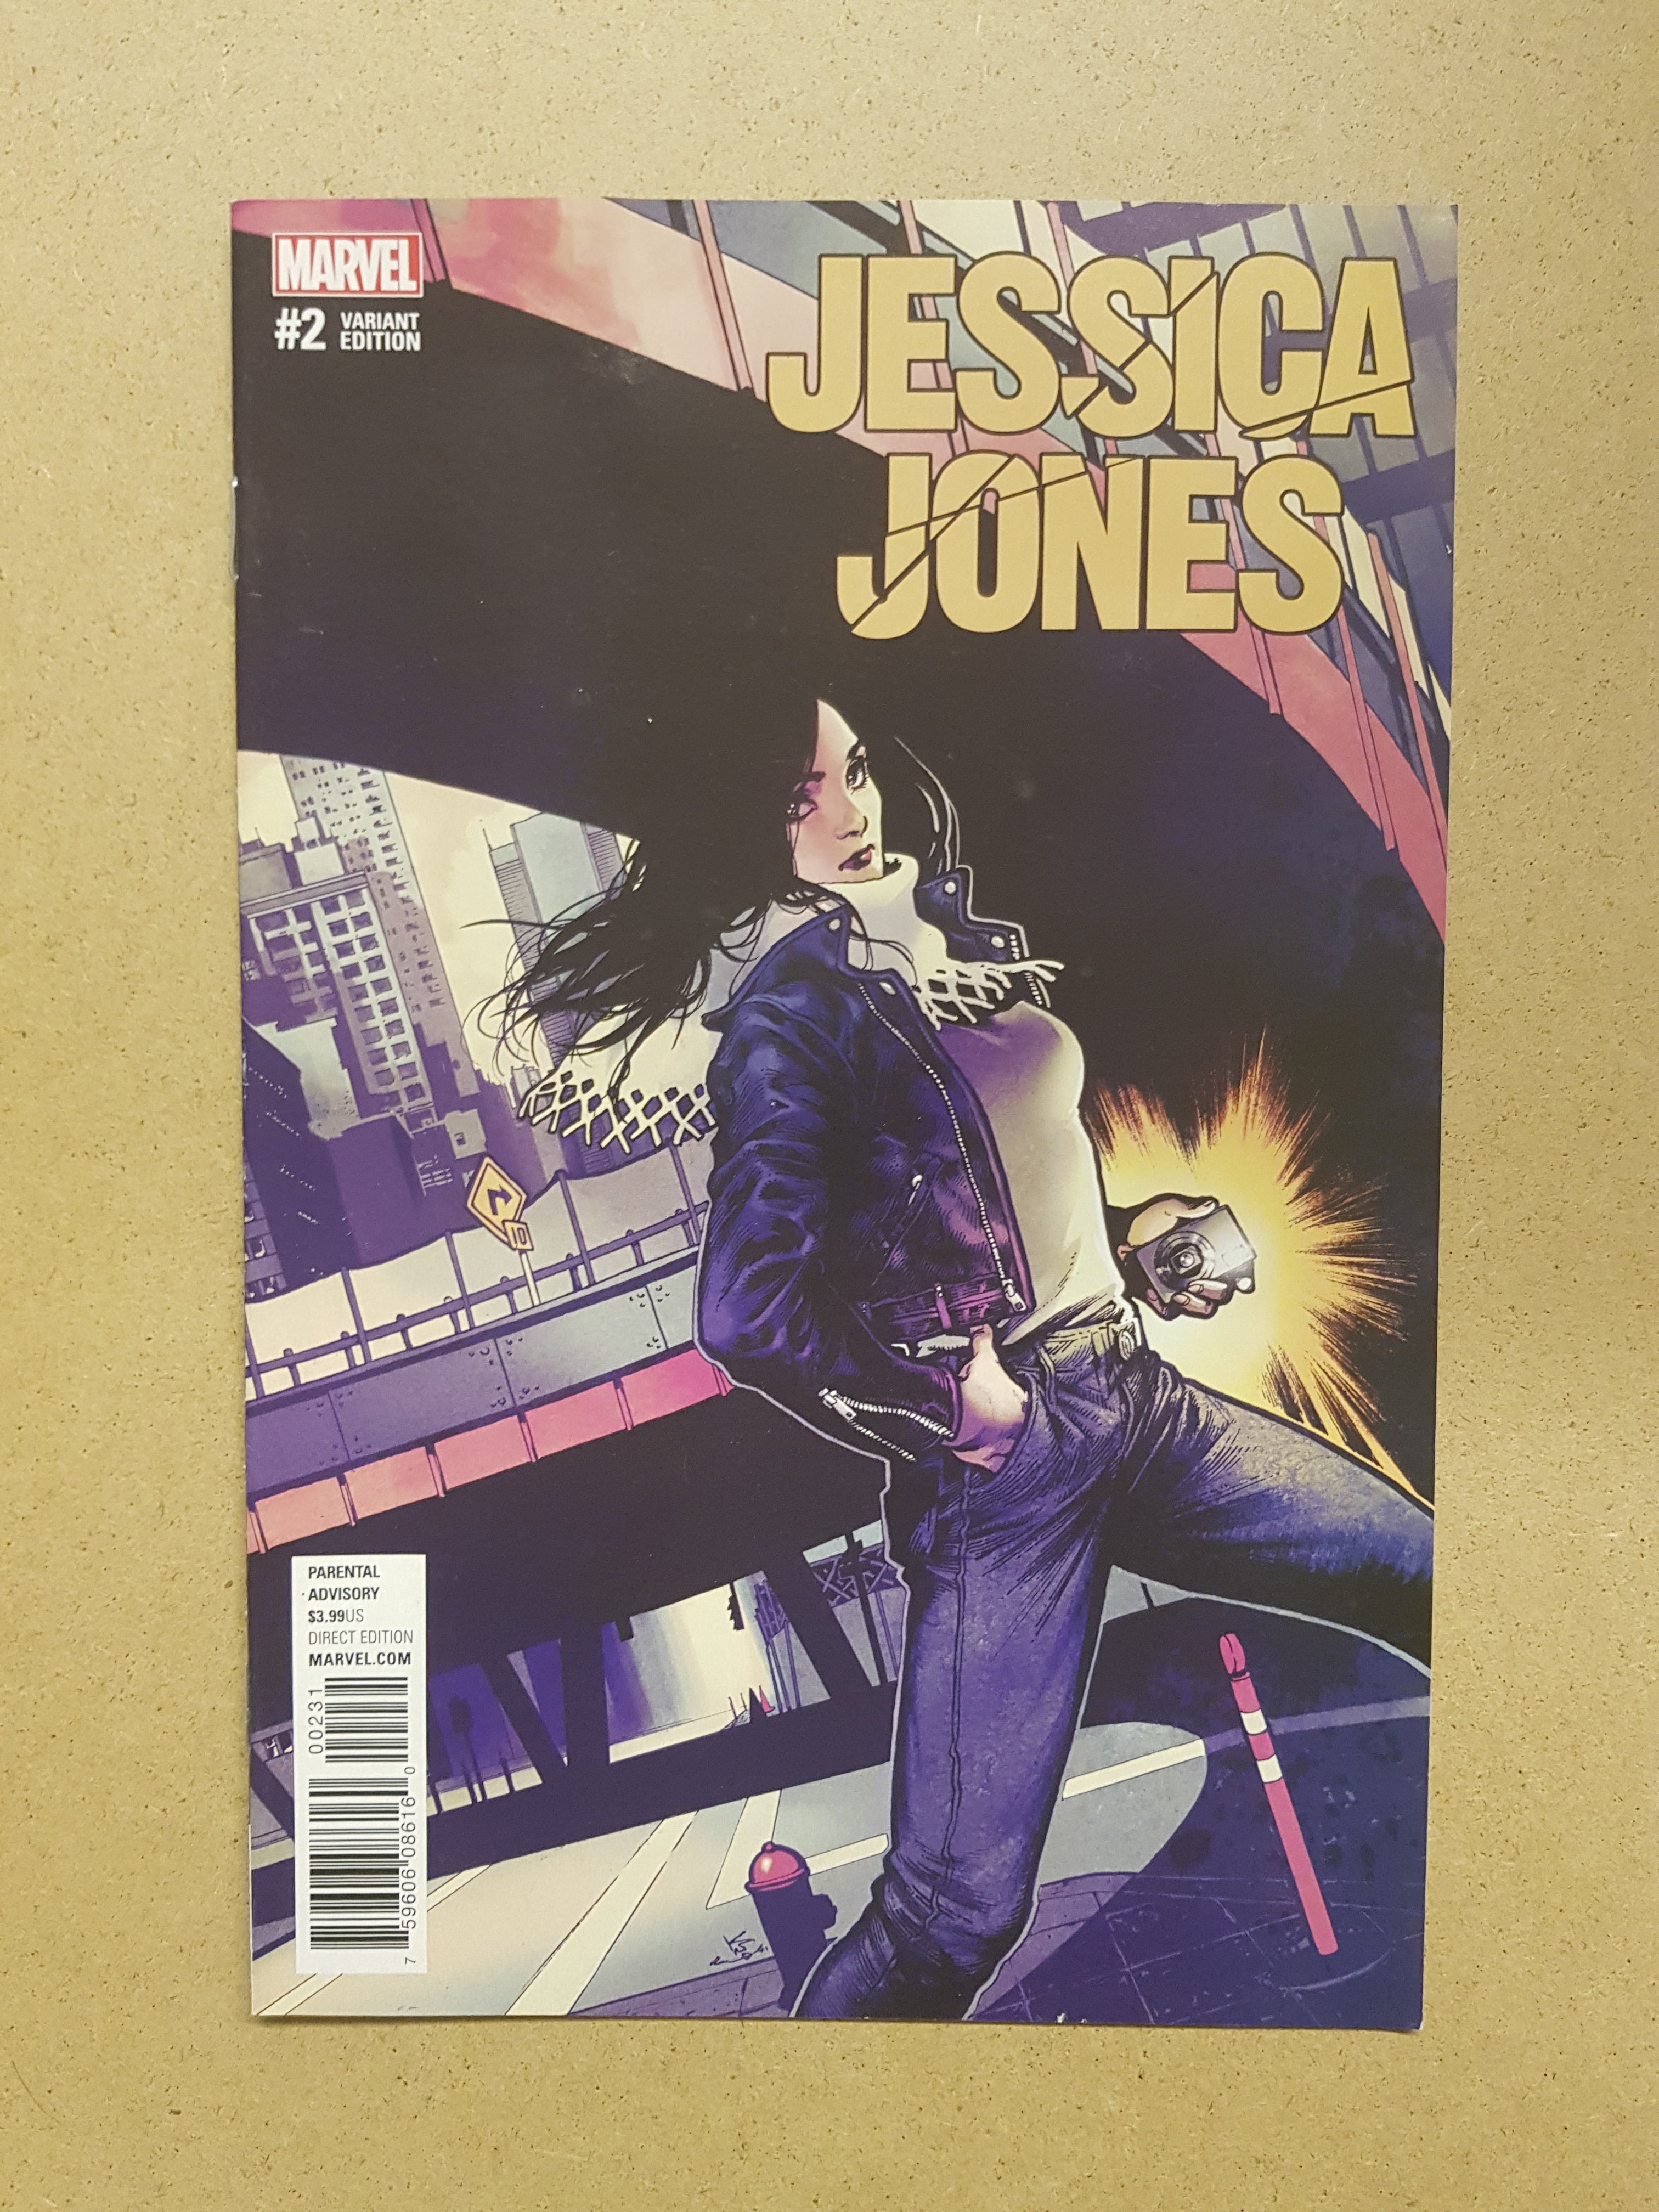 Jessica Jones #2 Variant Cover